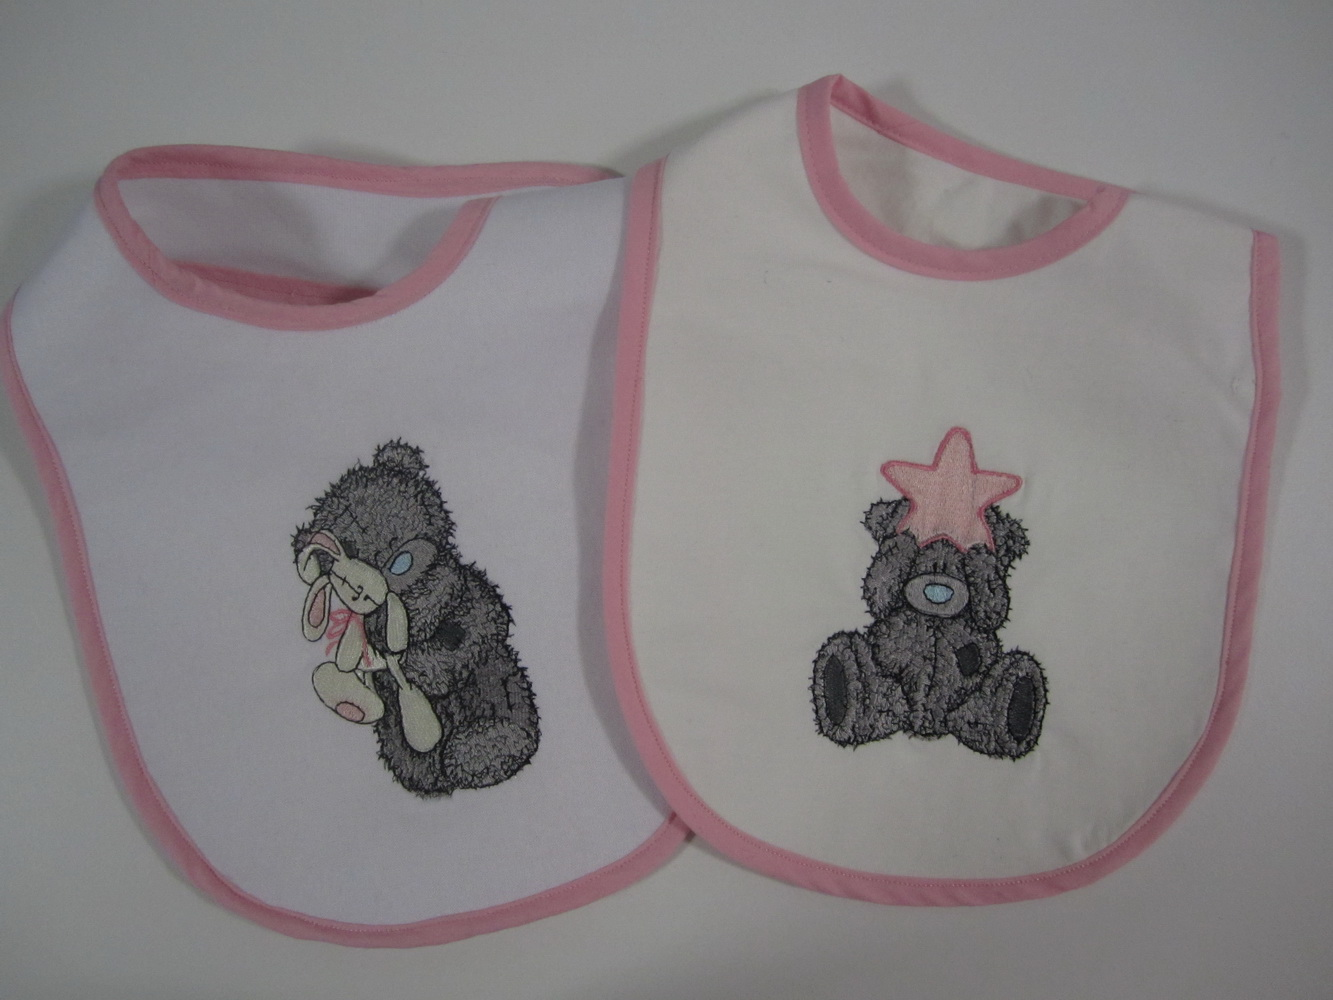 Embroidered Teddy bear designs on bibs